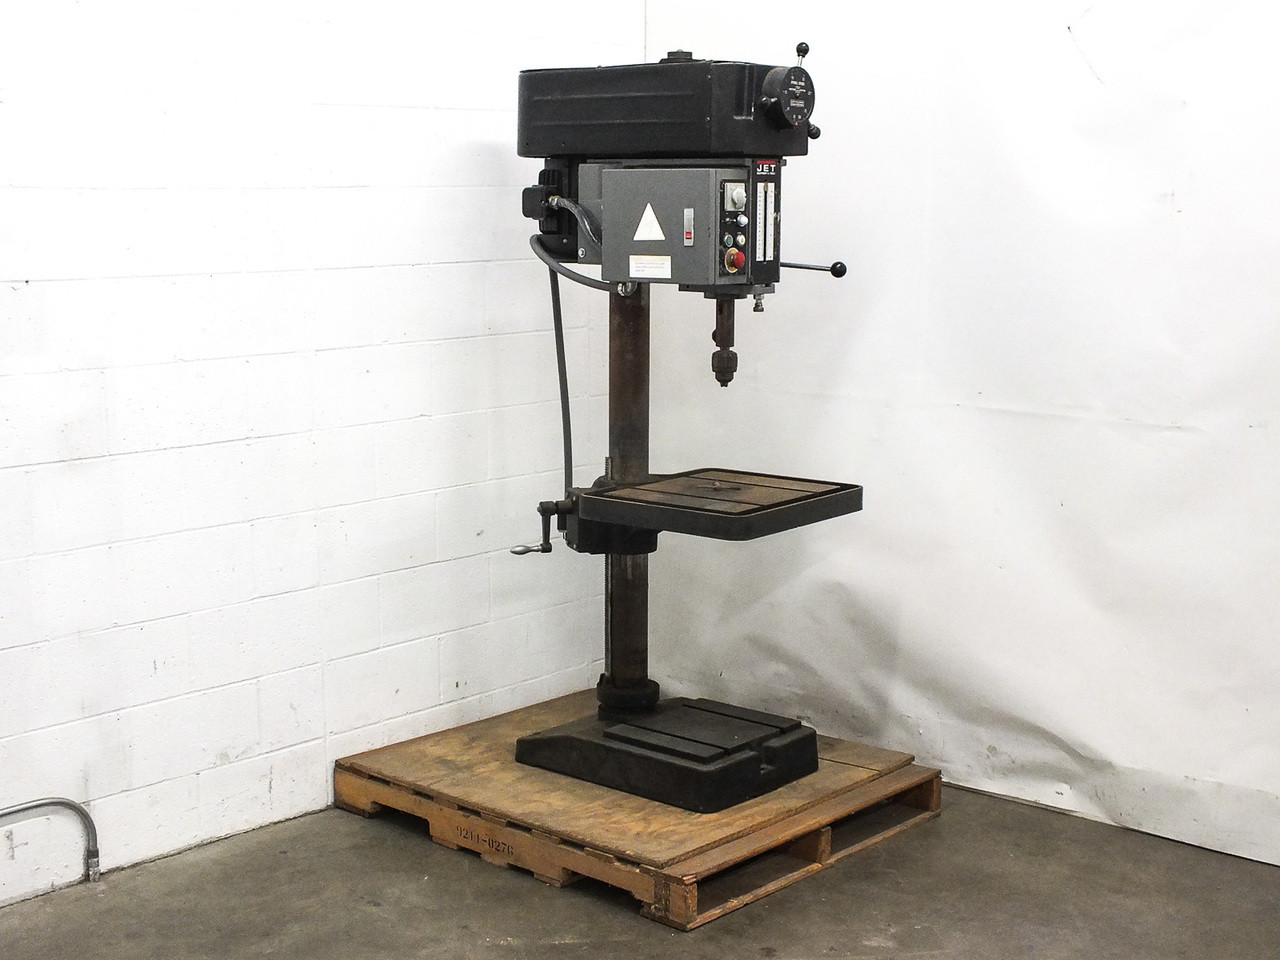 jet jdp 20vs 3 variable speed floor drill press 230vac 3 phase 2hp 1.1297__27704.1490312872?c=2 jet jdp 20vs 3 variable speed floor drill press 230vac 3 phase 2hp  at bakdesigns.co